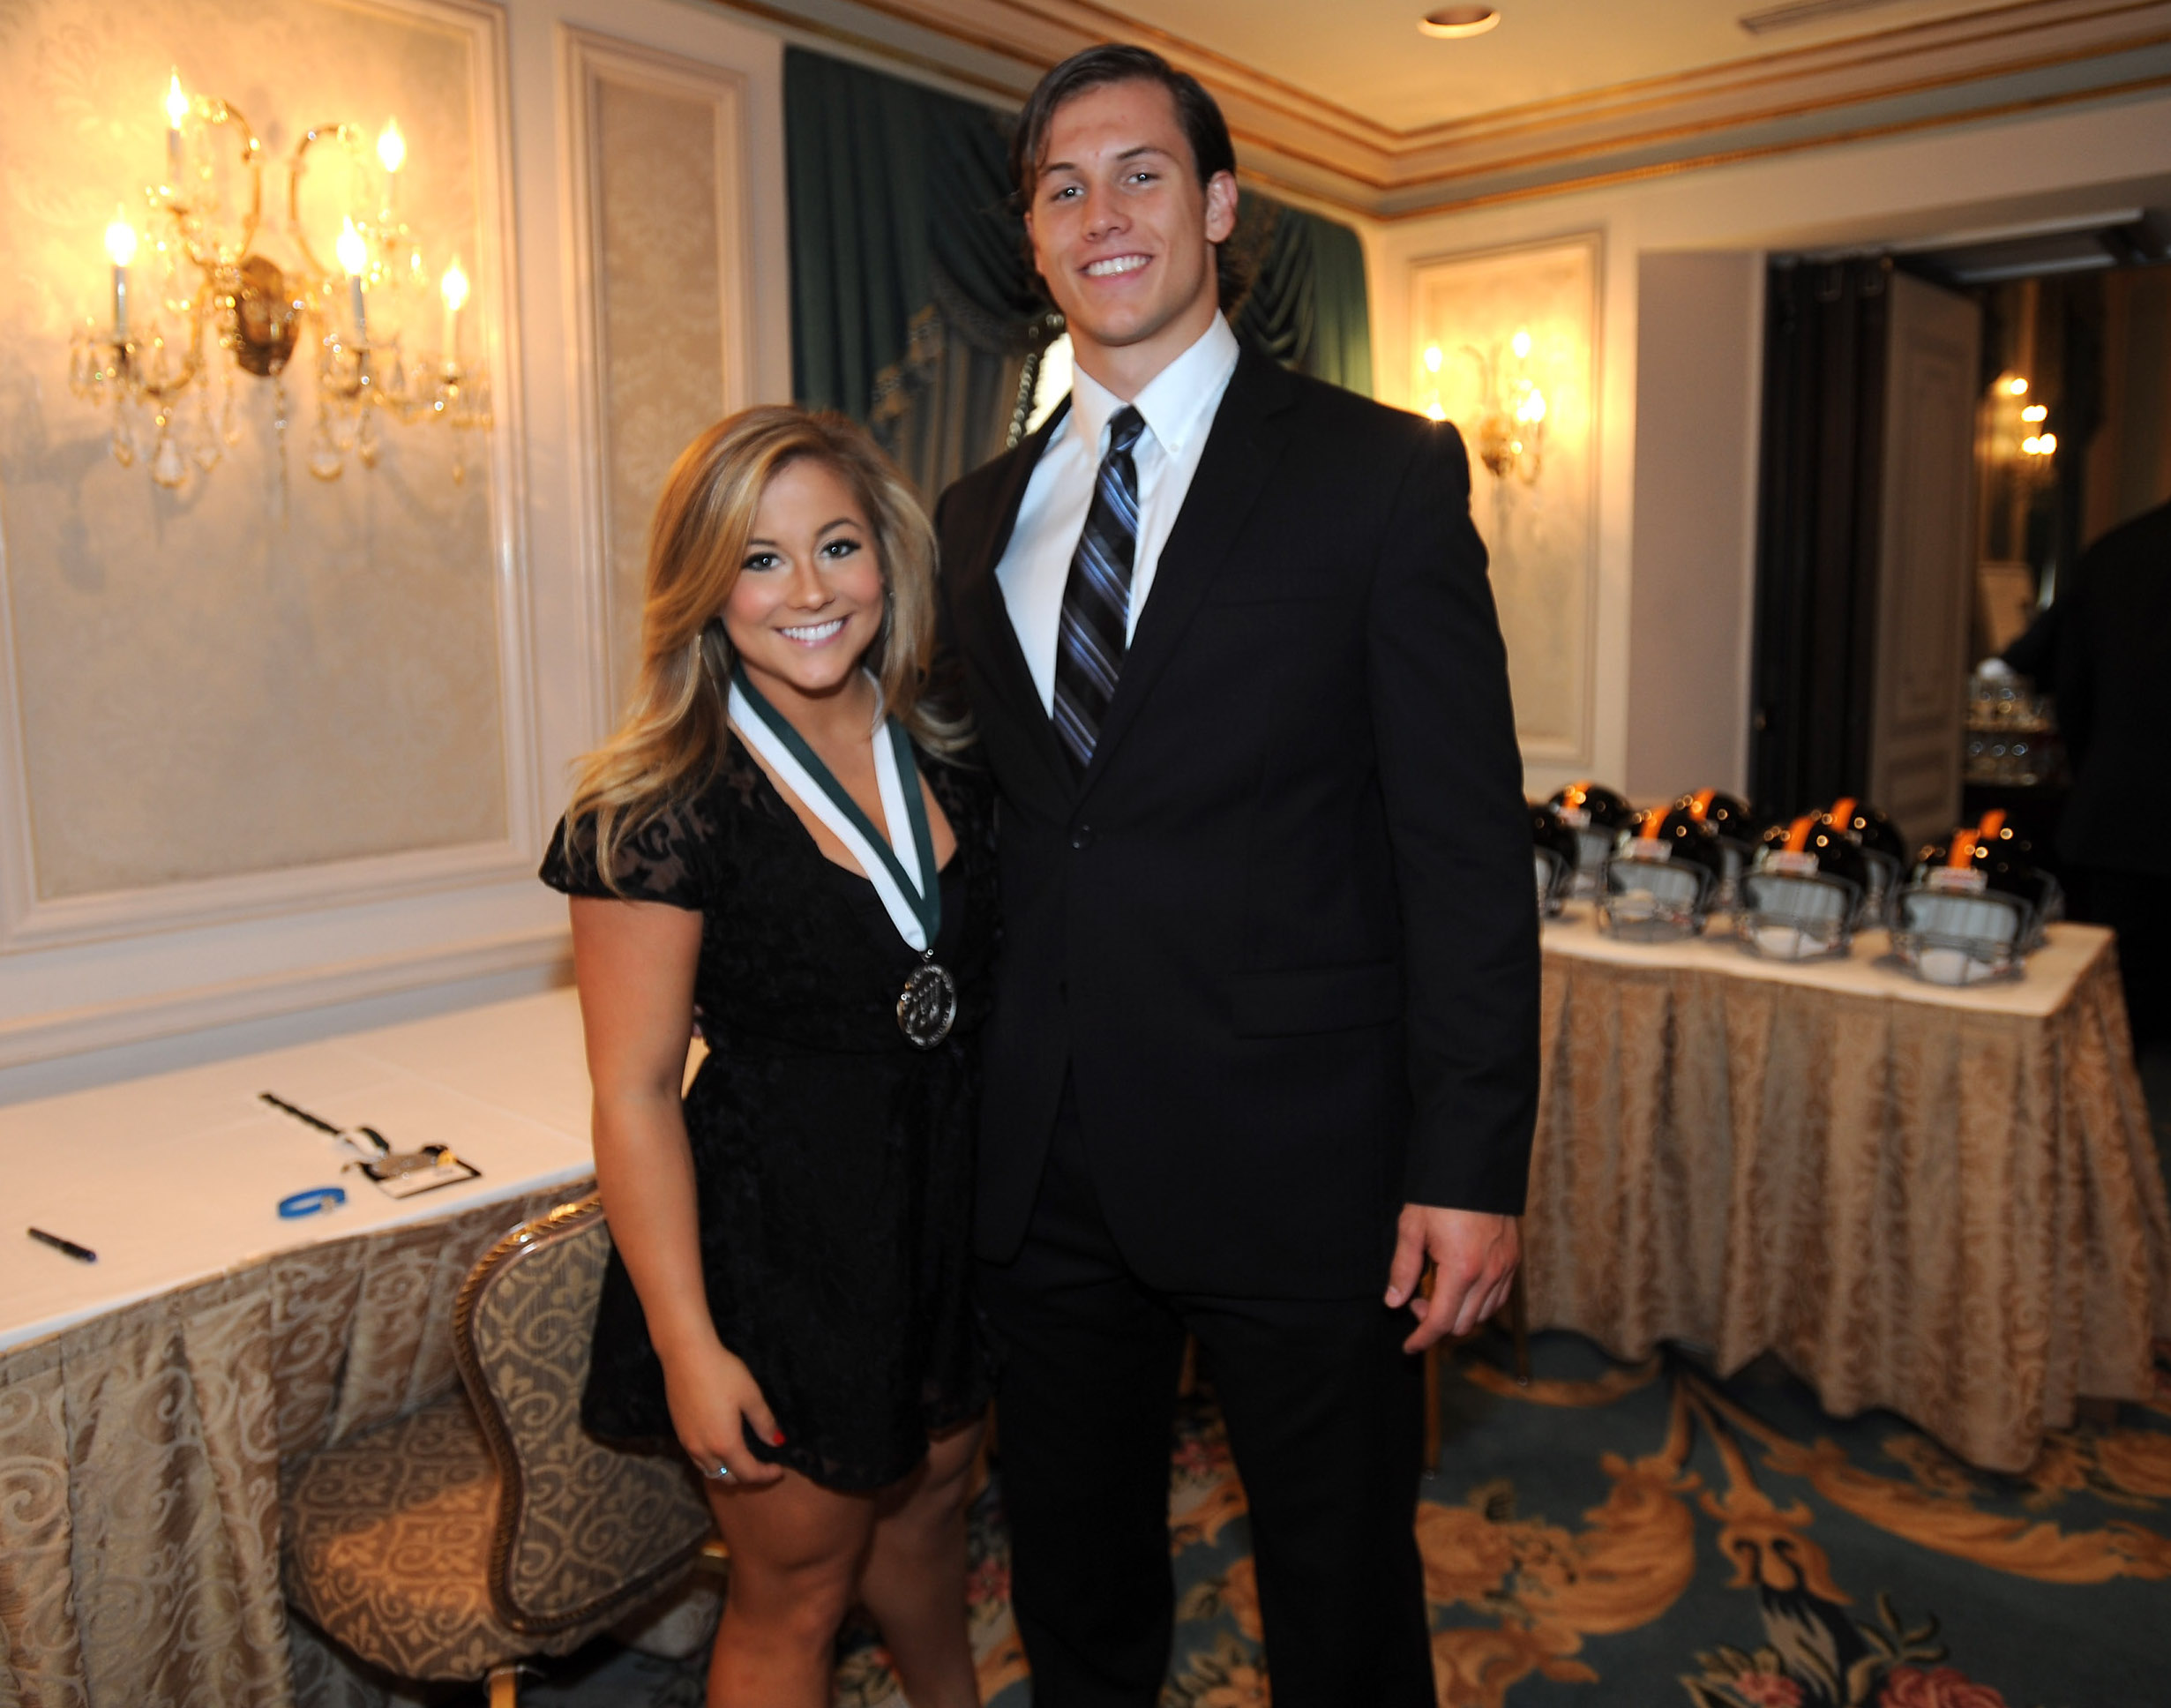 Shawn Johnson East and Andrew East in 2013 in New York